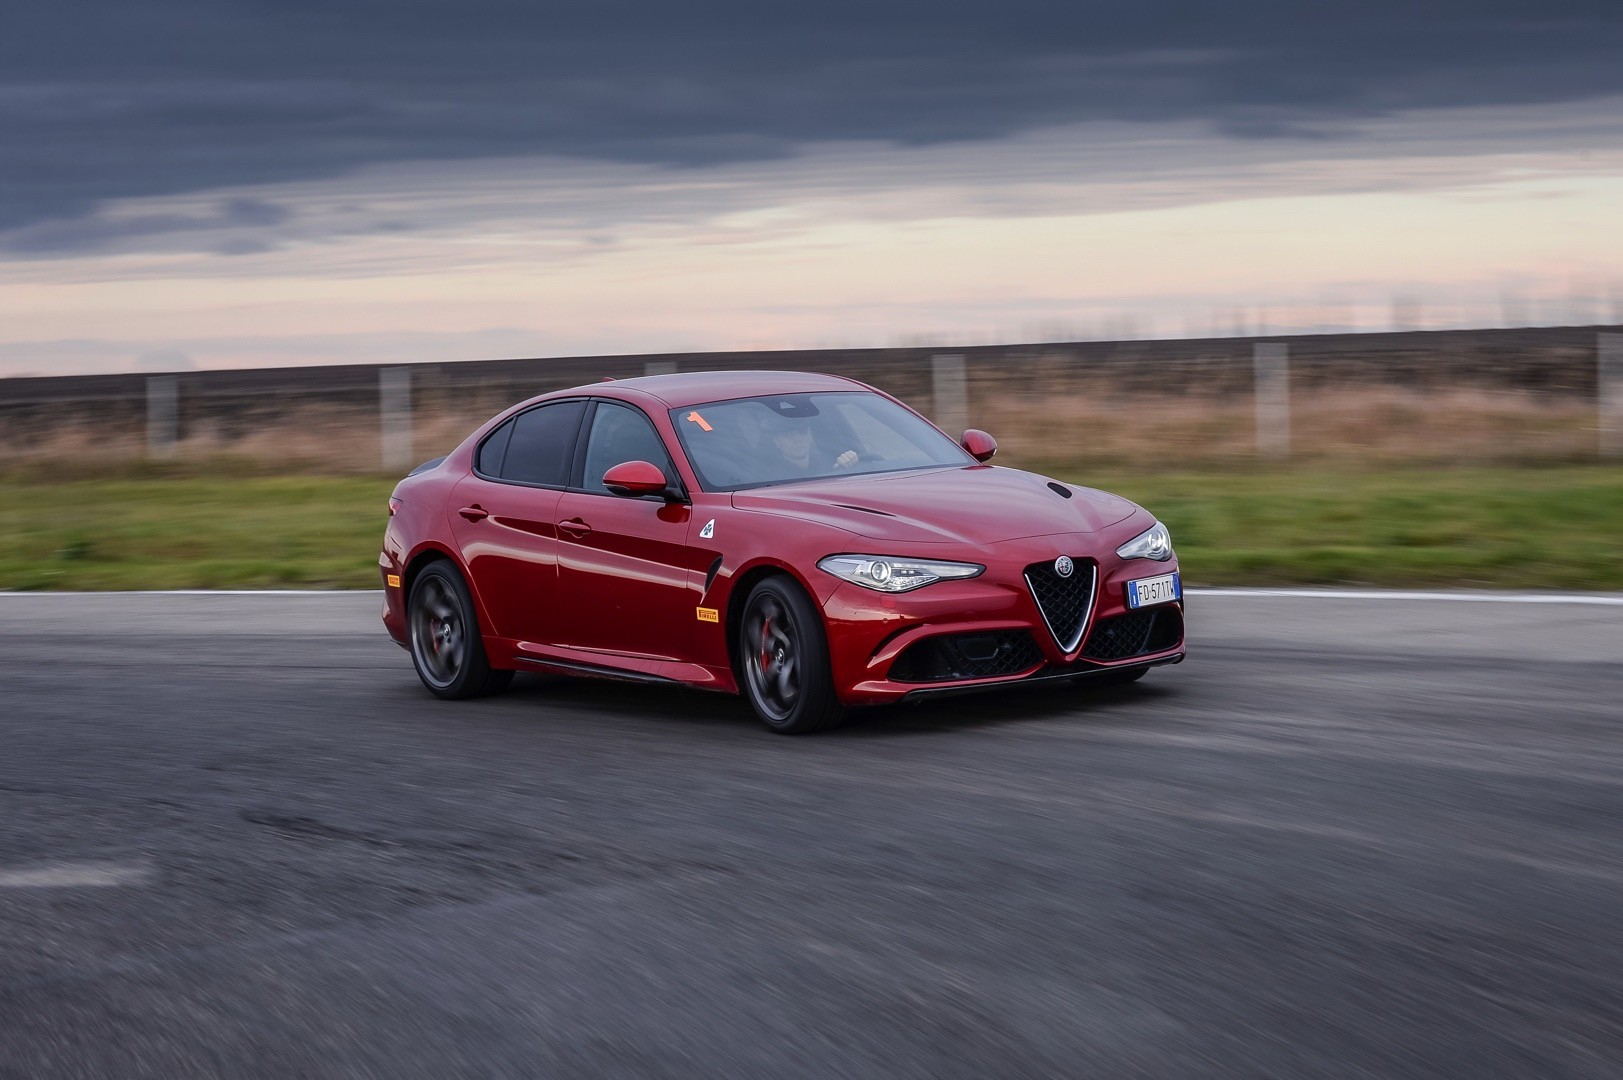 2017 alfa romeo giulia goes on sale in the u s priced from 37 995 autoevolution. Black Bedroom Furniture Sets. Home Design Ideas